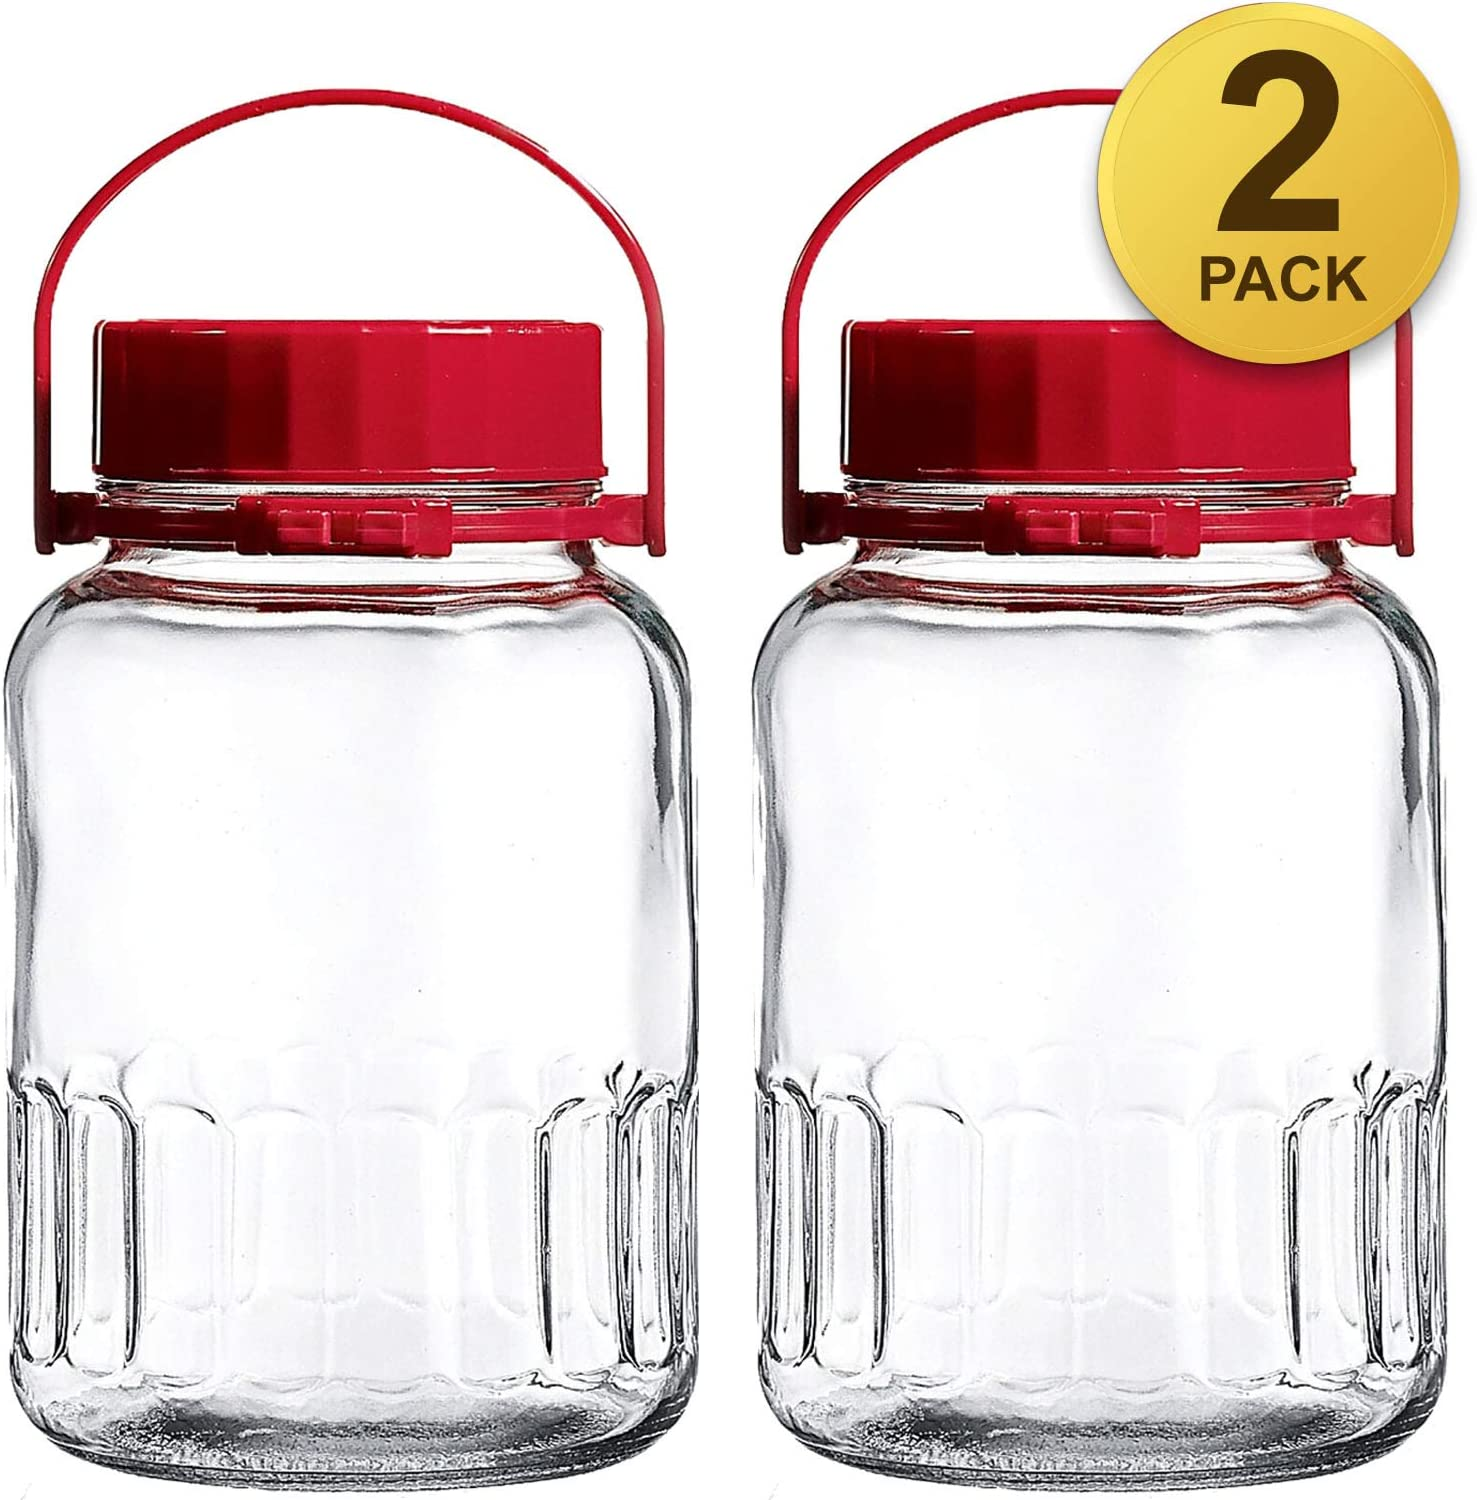 Premium 1 Gallon Glass Jar Wide Mouth Airtight Plastic Lid 4L Preserving Bulk-dry Food Storage BPA-Free Dishwasher Safe Mason Jar Canister Jug Fermenting Kombucha Kefir Storing Canning Clear 2 Pack